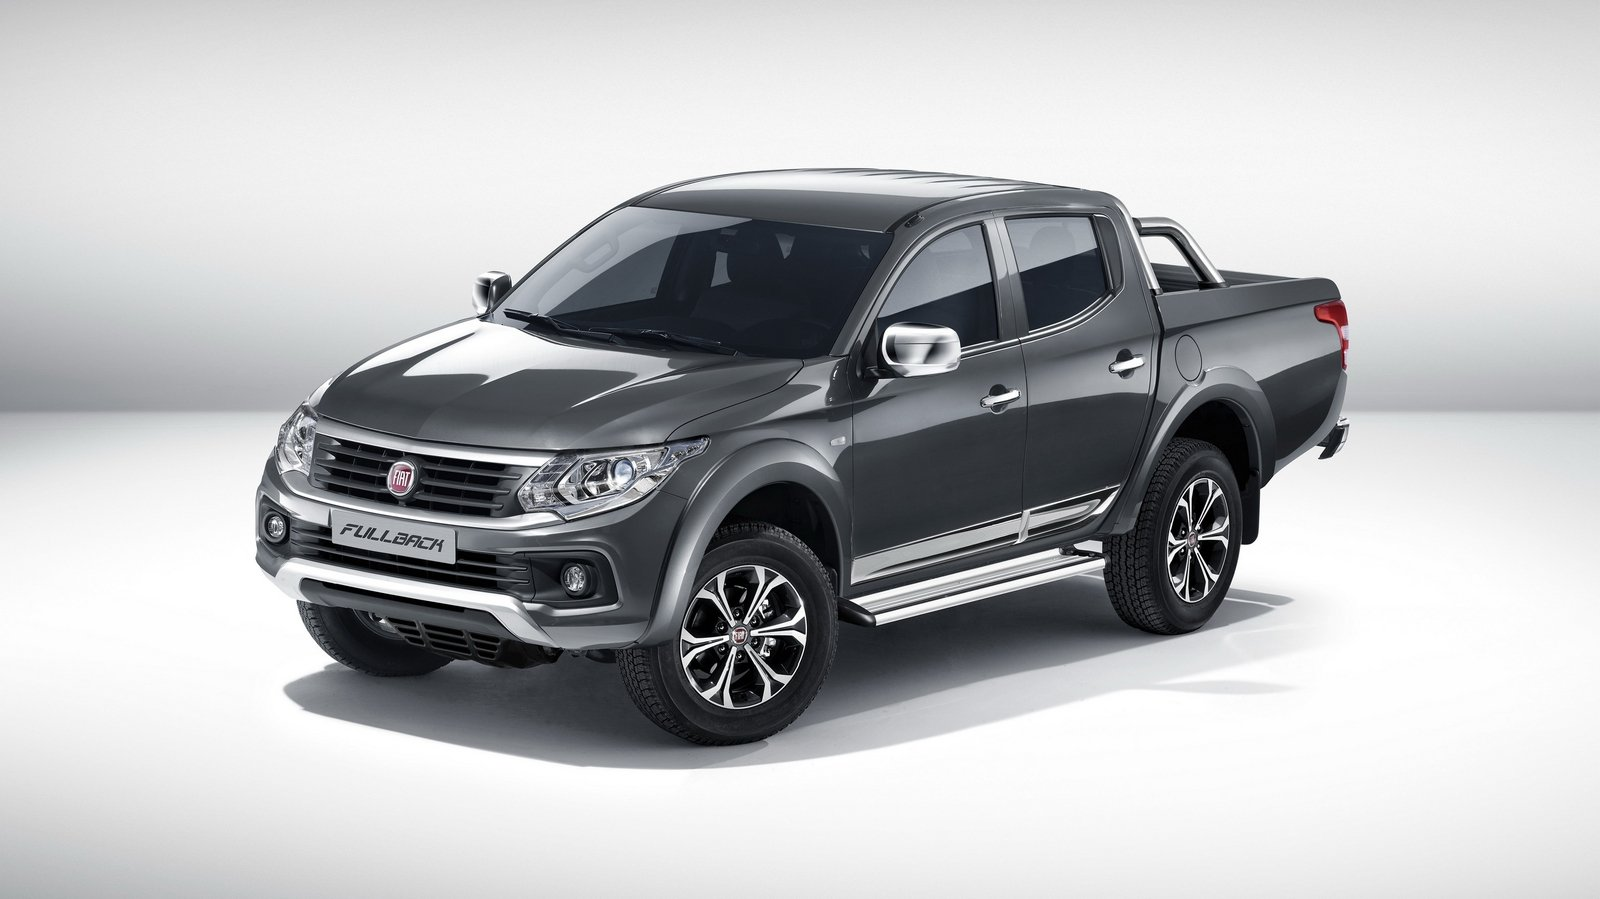 2016 fiat fullback picture 655237 truck review top speed. Black Bedroom Furniture Sets. Home Design Ideas